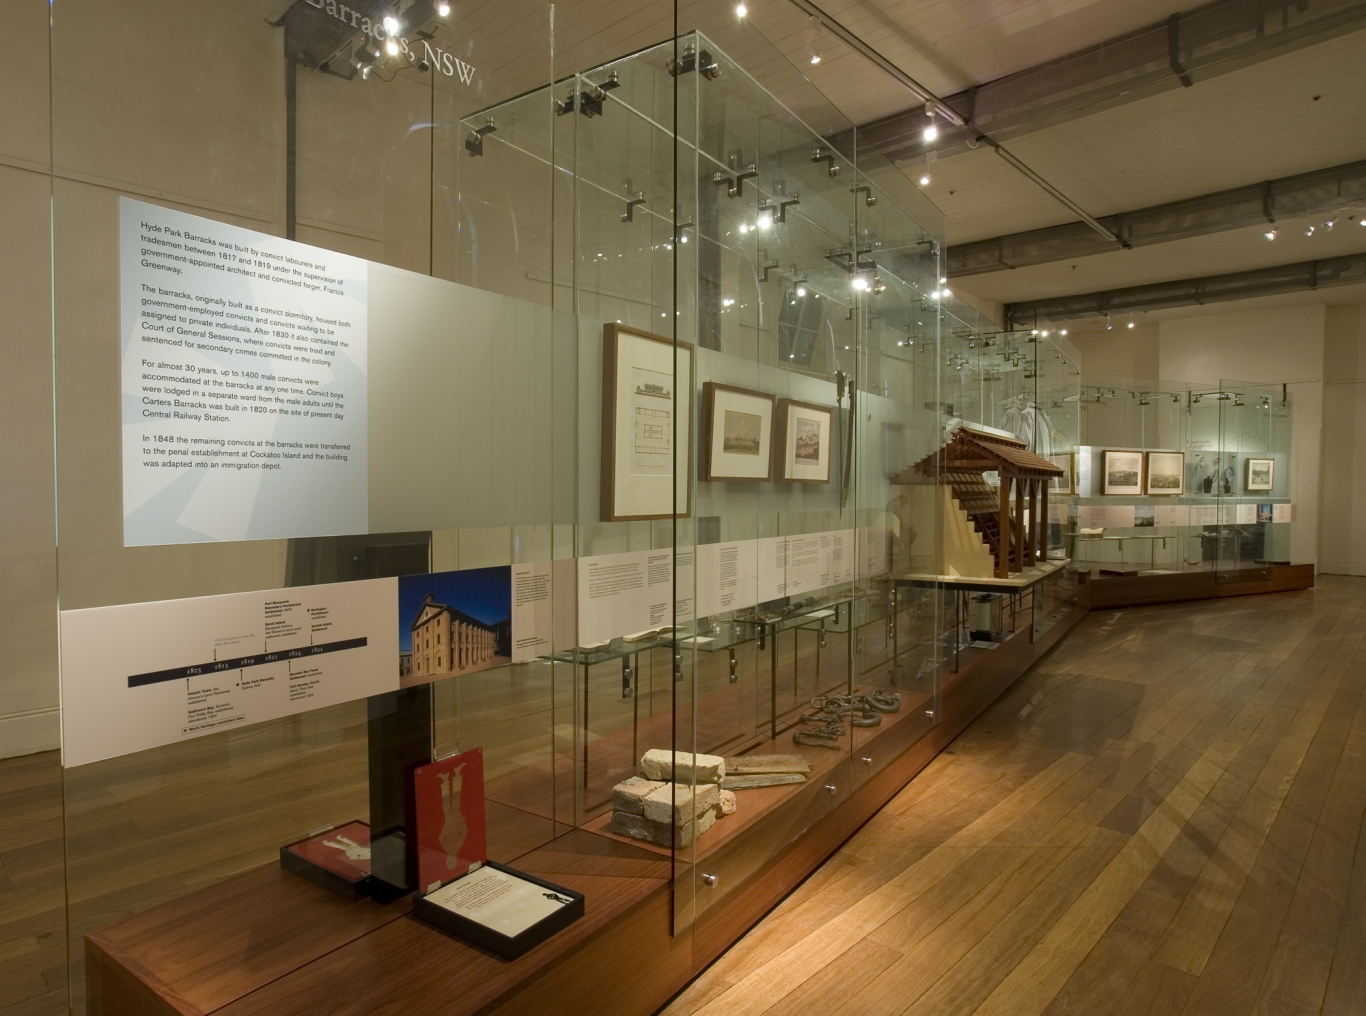 Documentation of Convicts: sites of punishment exhibition showing exhibition panel and objects